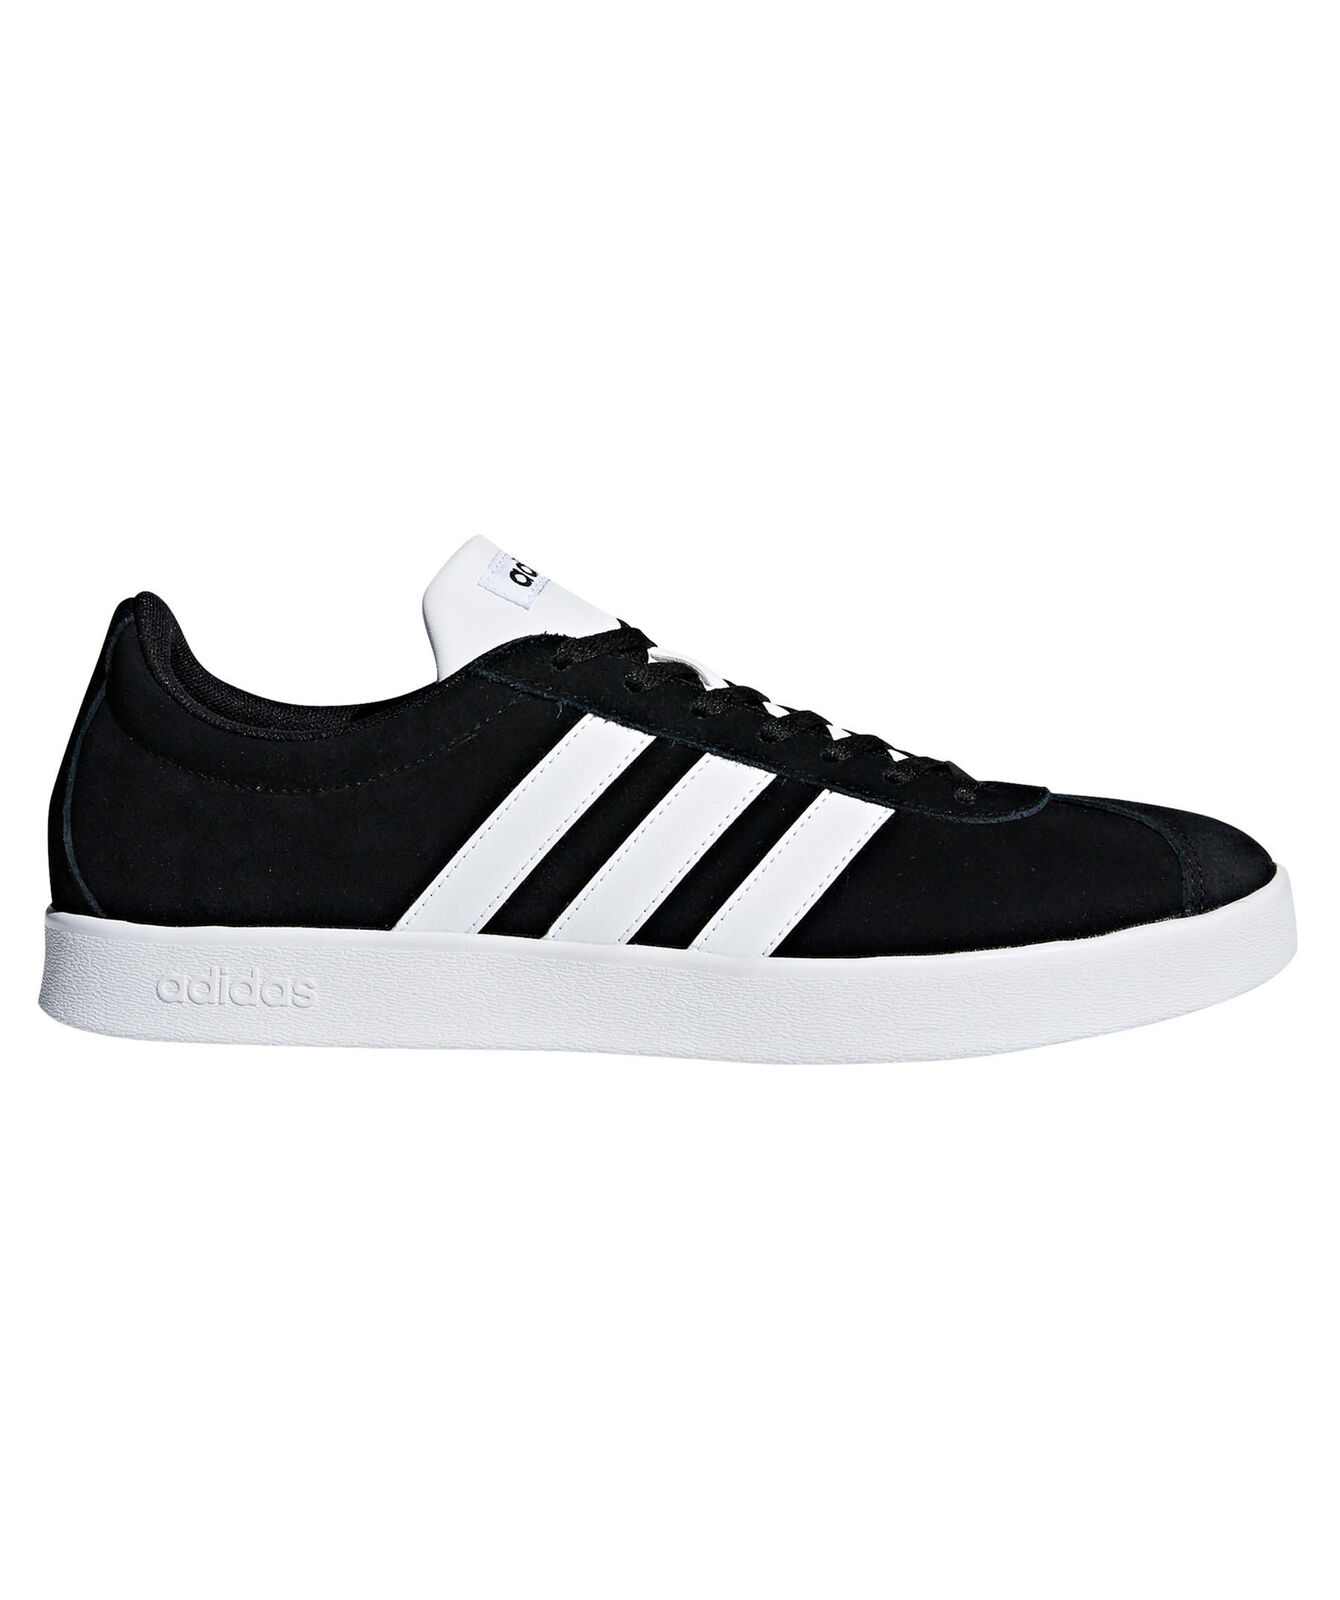 Adidas Court Performance Herren Sneakers